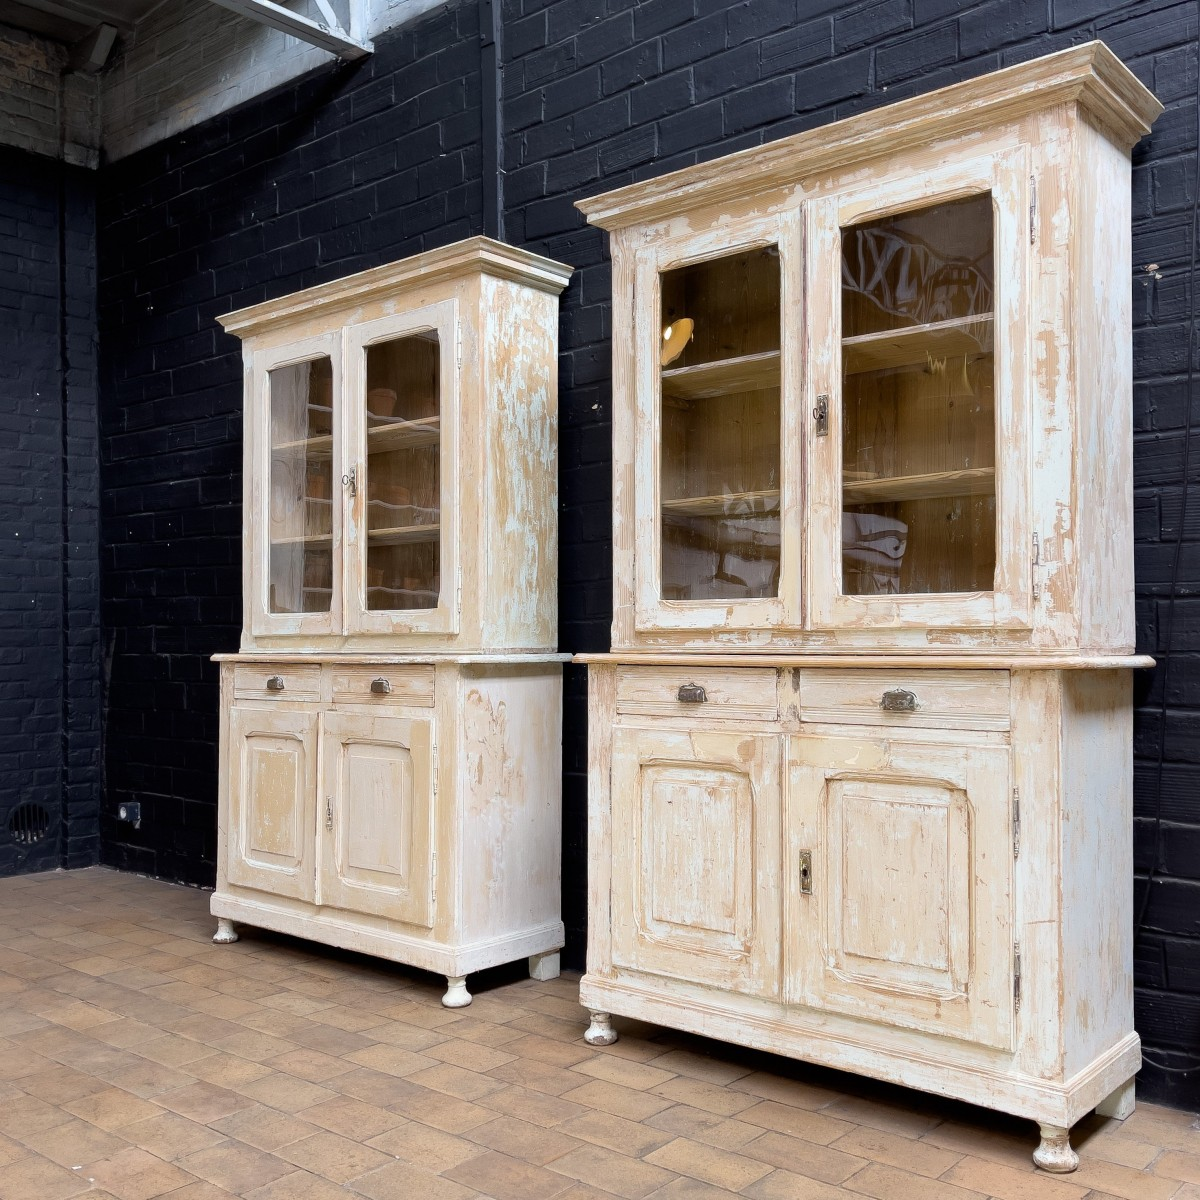 Pair of french buffet deux-corps